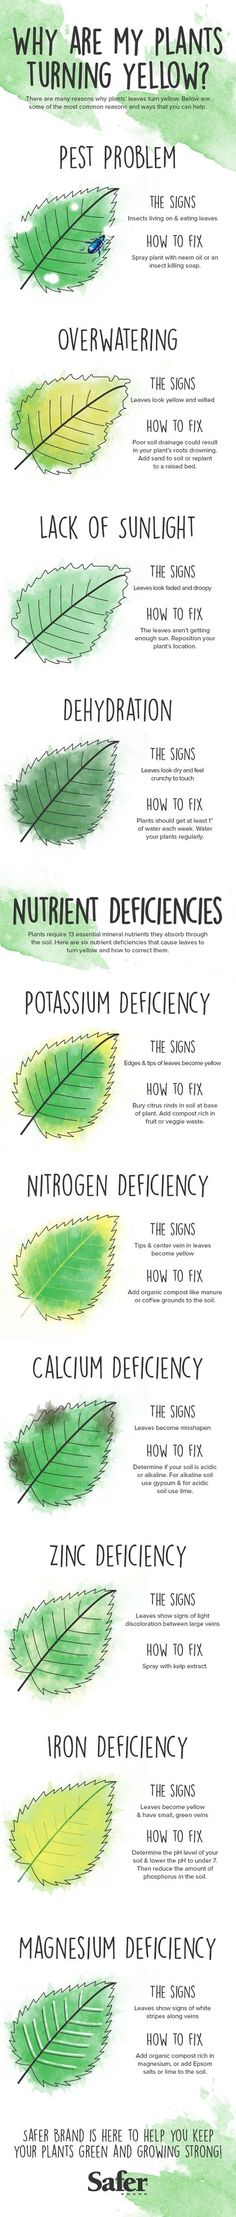 Troubles with your plants? Hopefully this infographic will help keep them perky and blooming!